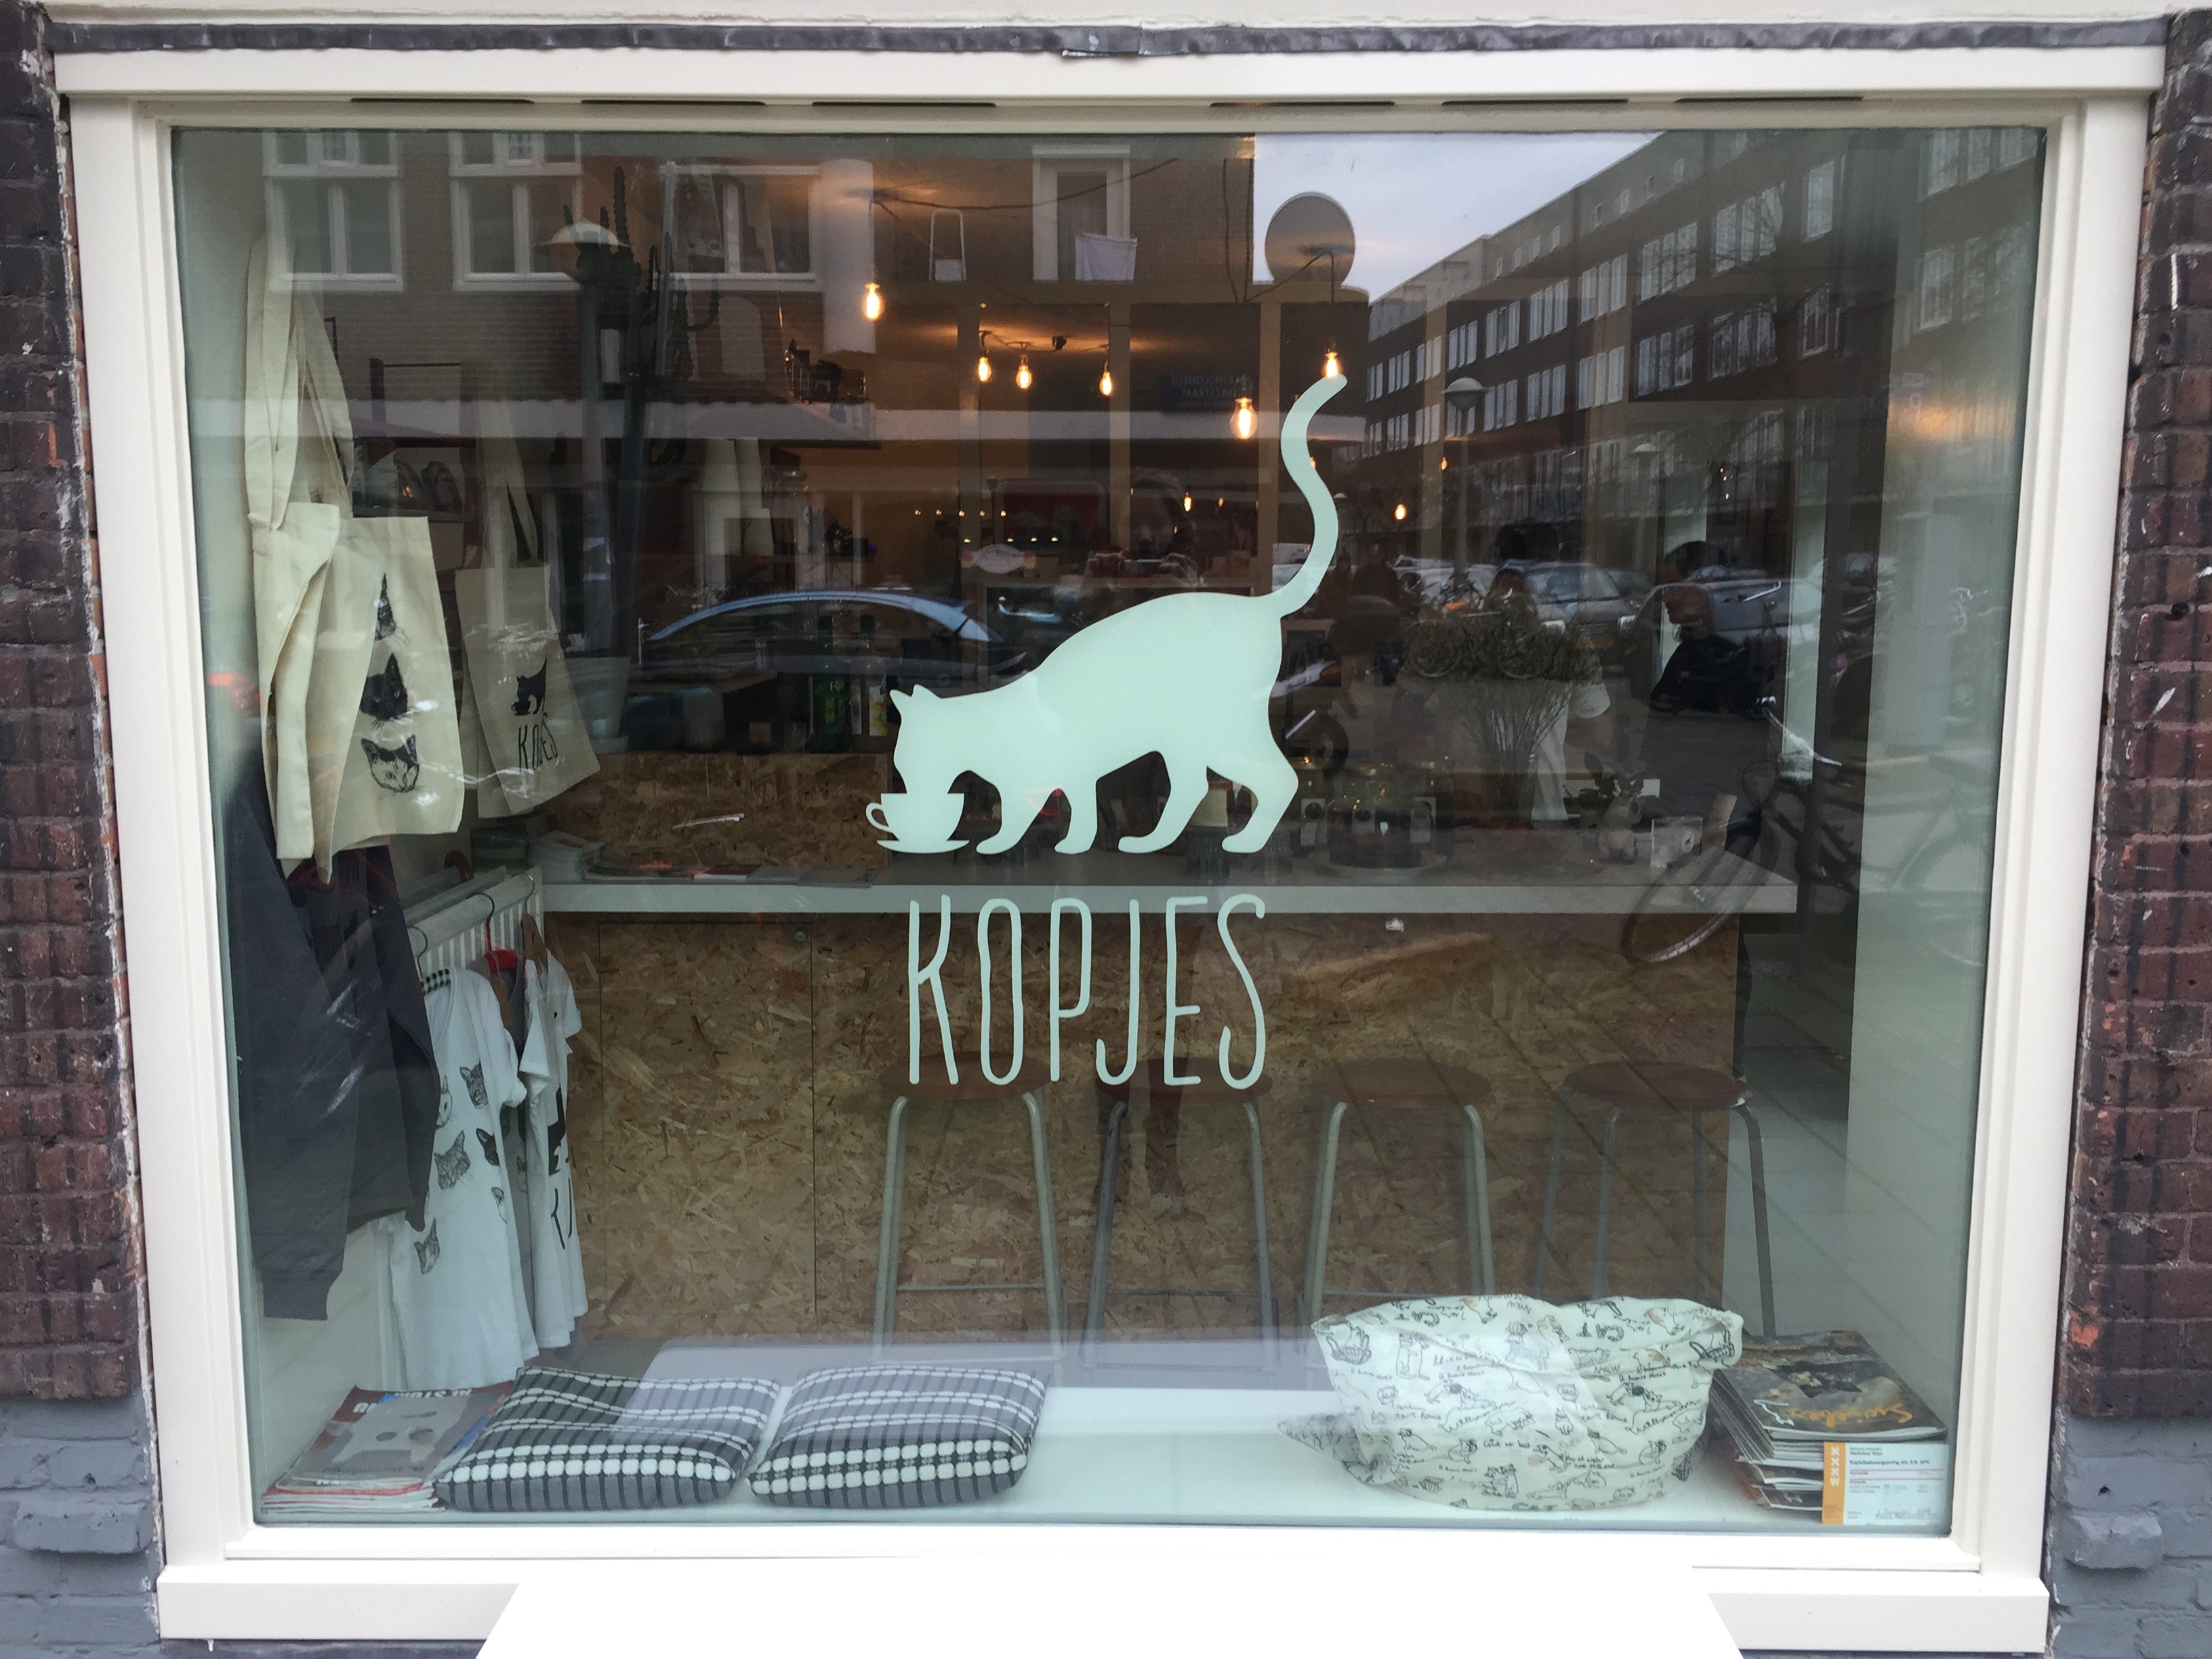 Do: Kopjes, a Cat café in Amsterdam